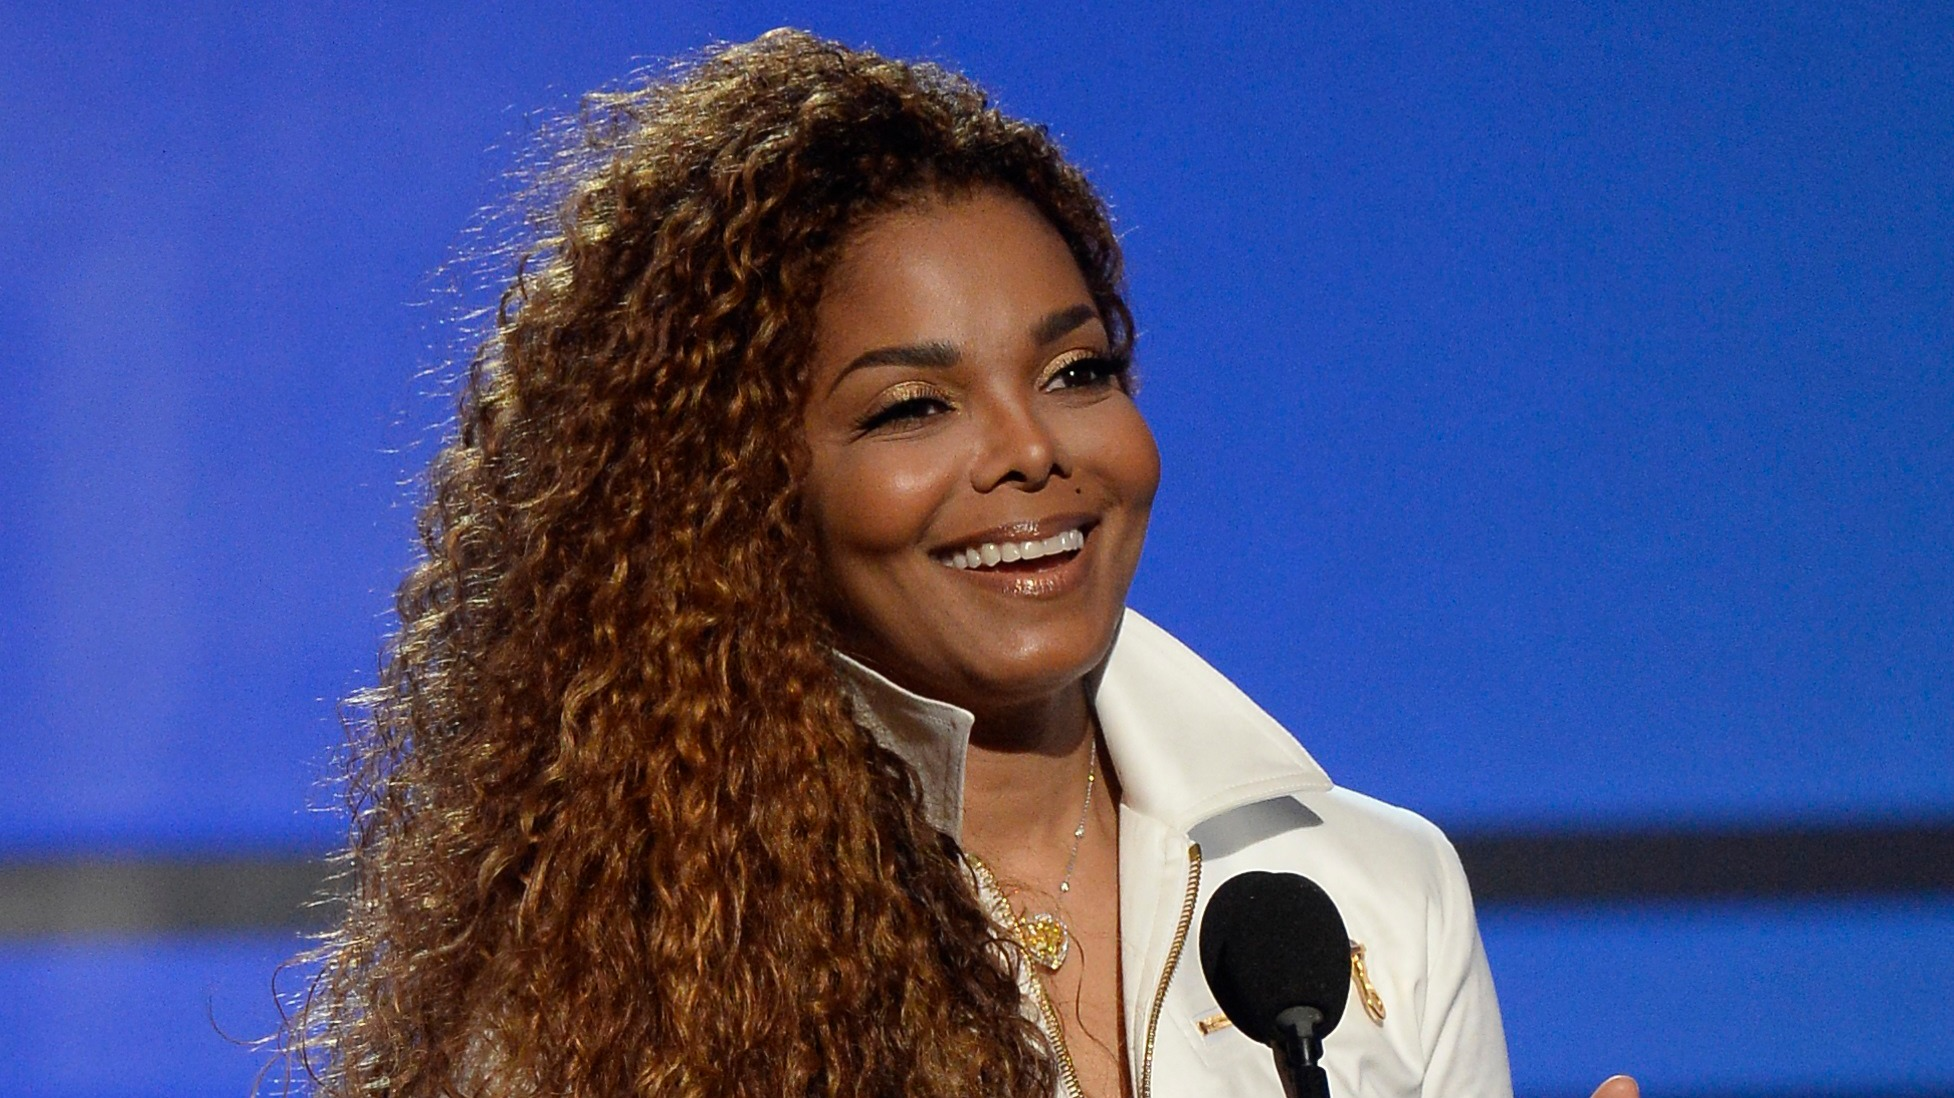 janet jackson Janet jackson's profile including the latest music, albums, songs, music videos and more updates.